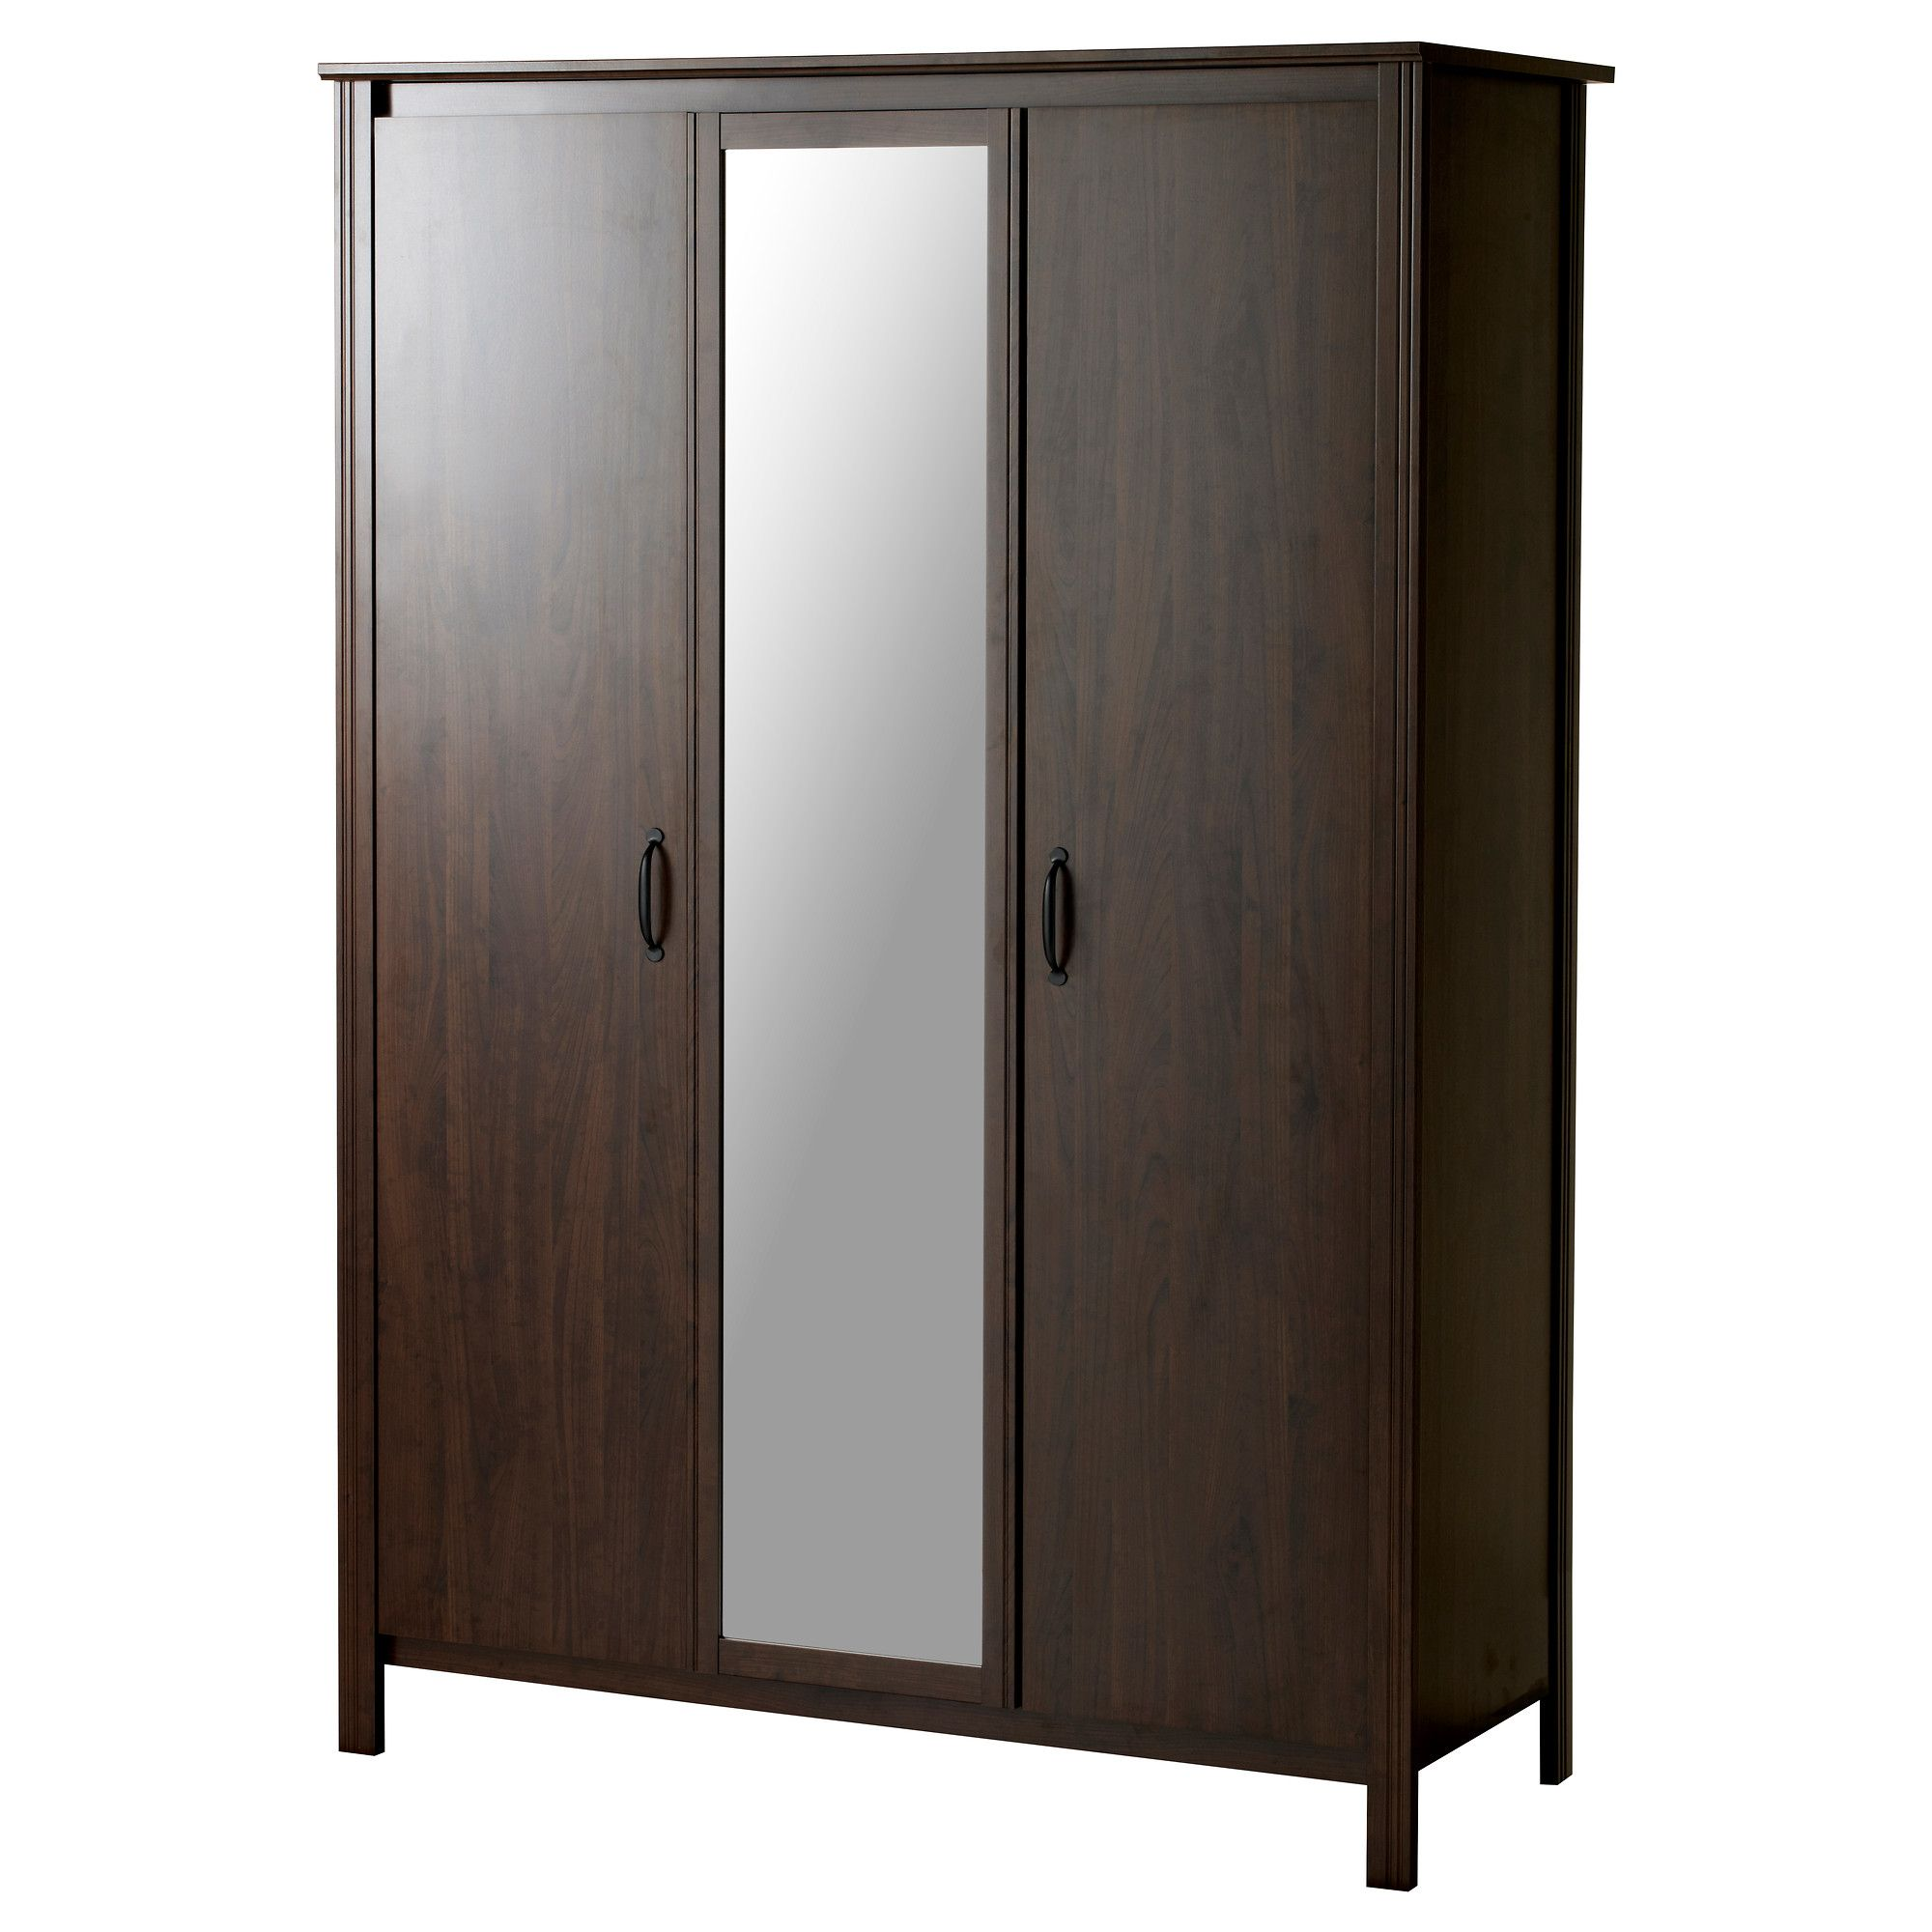 Le Meilleur Brusali Wardrobe With 3 Doors Ikea For The Practice Room Ce Mois Ci